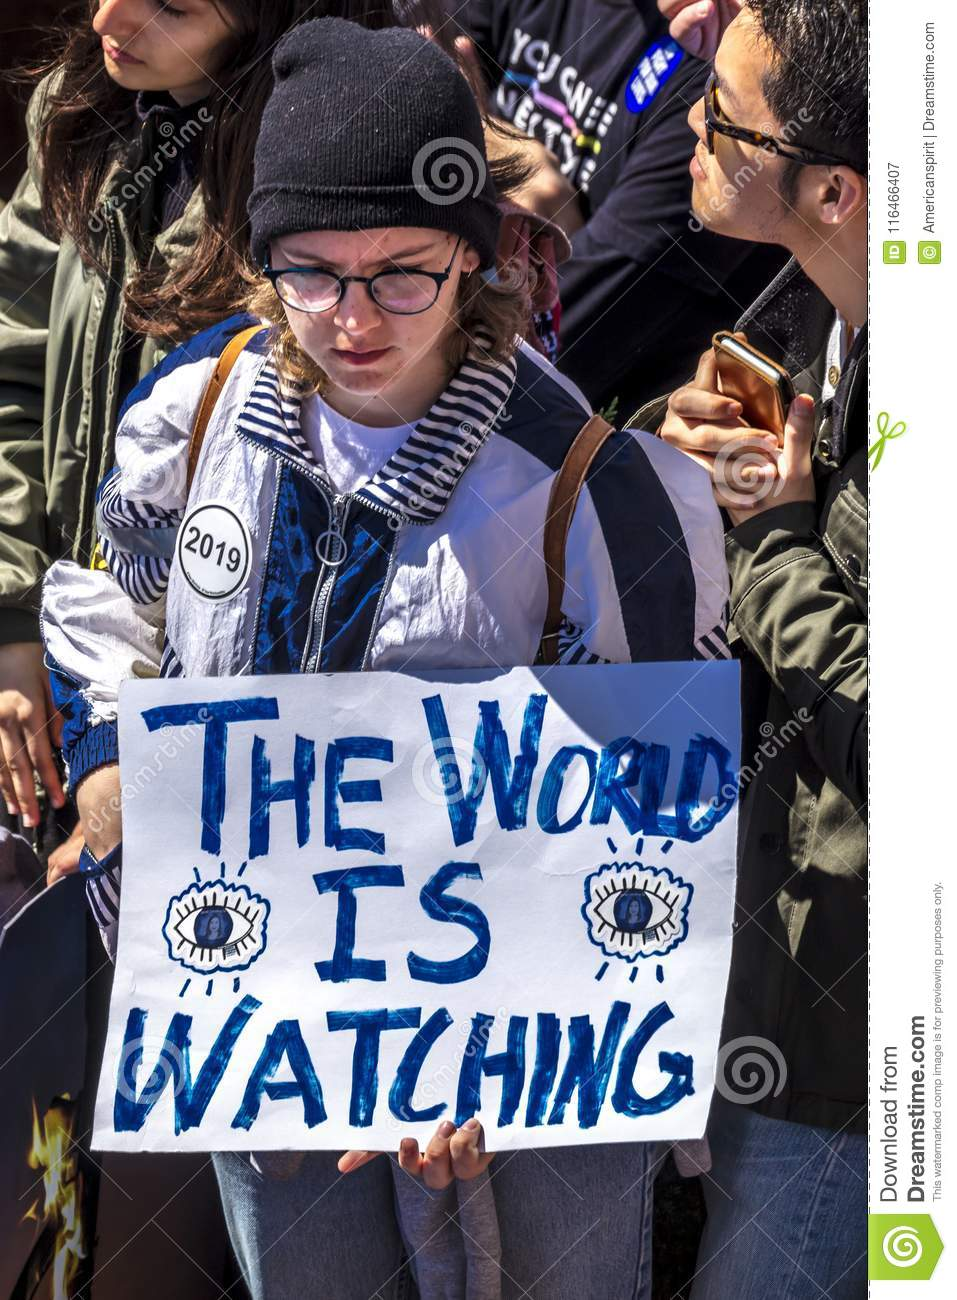 MARCH 24, 2018: Washington, D.C. hundreds of thousands protest against NRA on Pennsylvania Avenue. Against, our